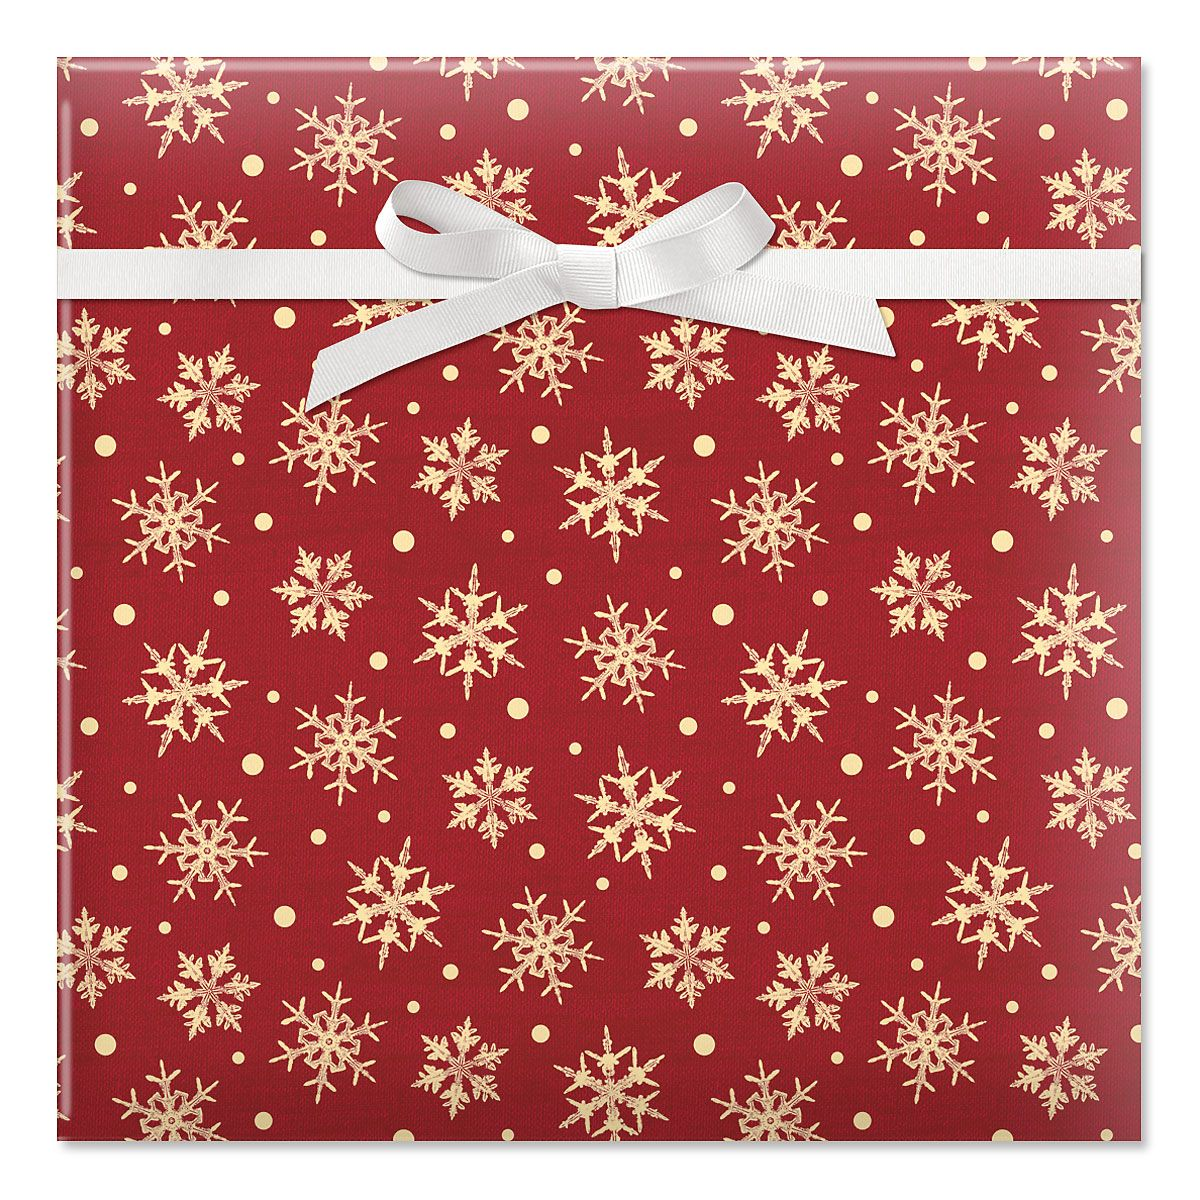 Snowflake Dots Jumbo Rolled Gift Wrap and Labels